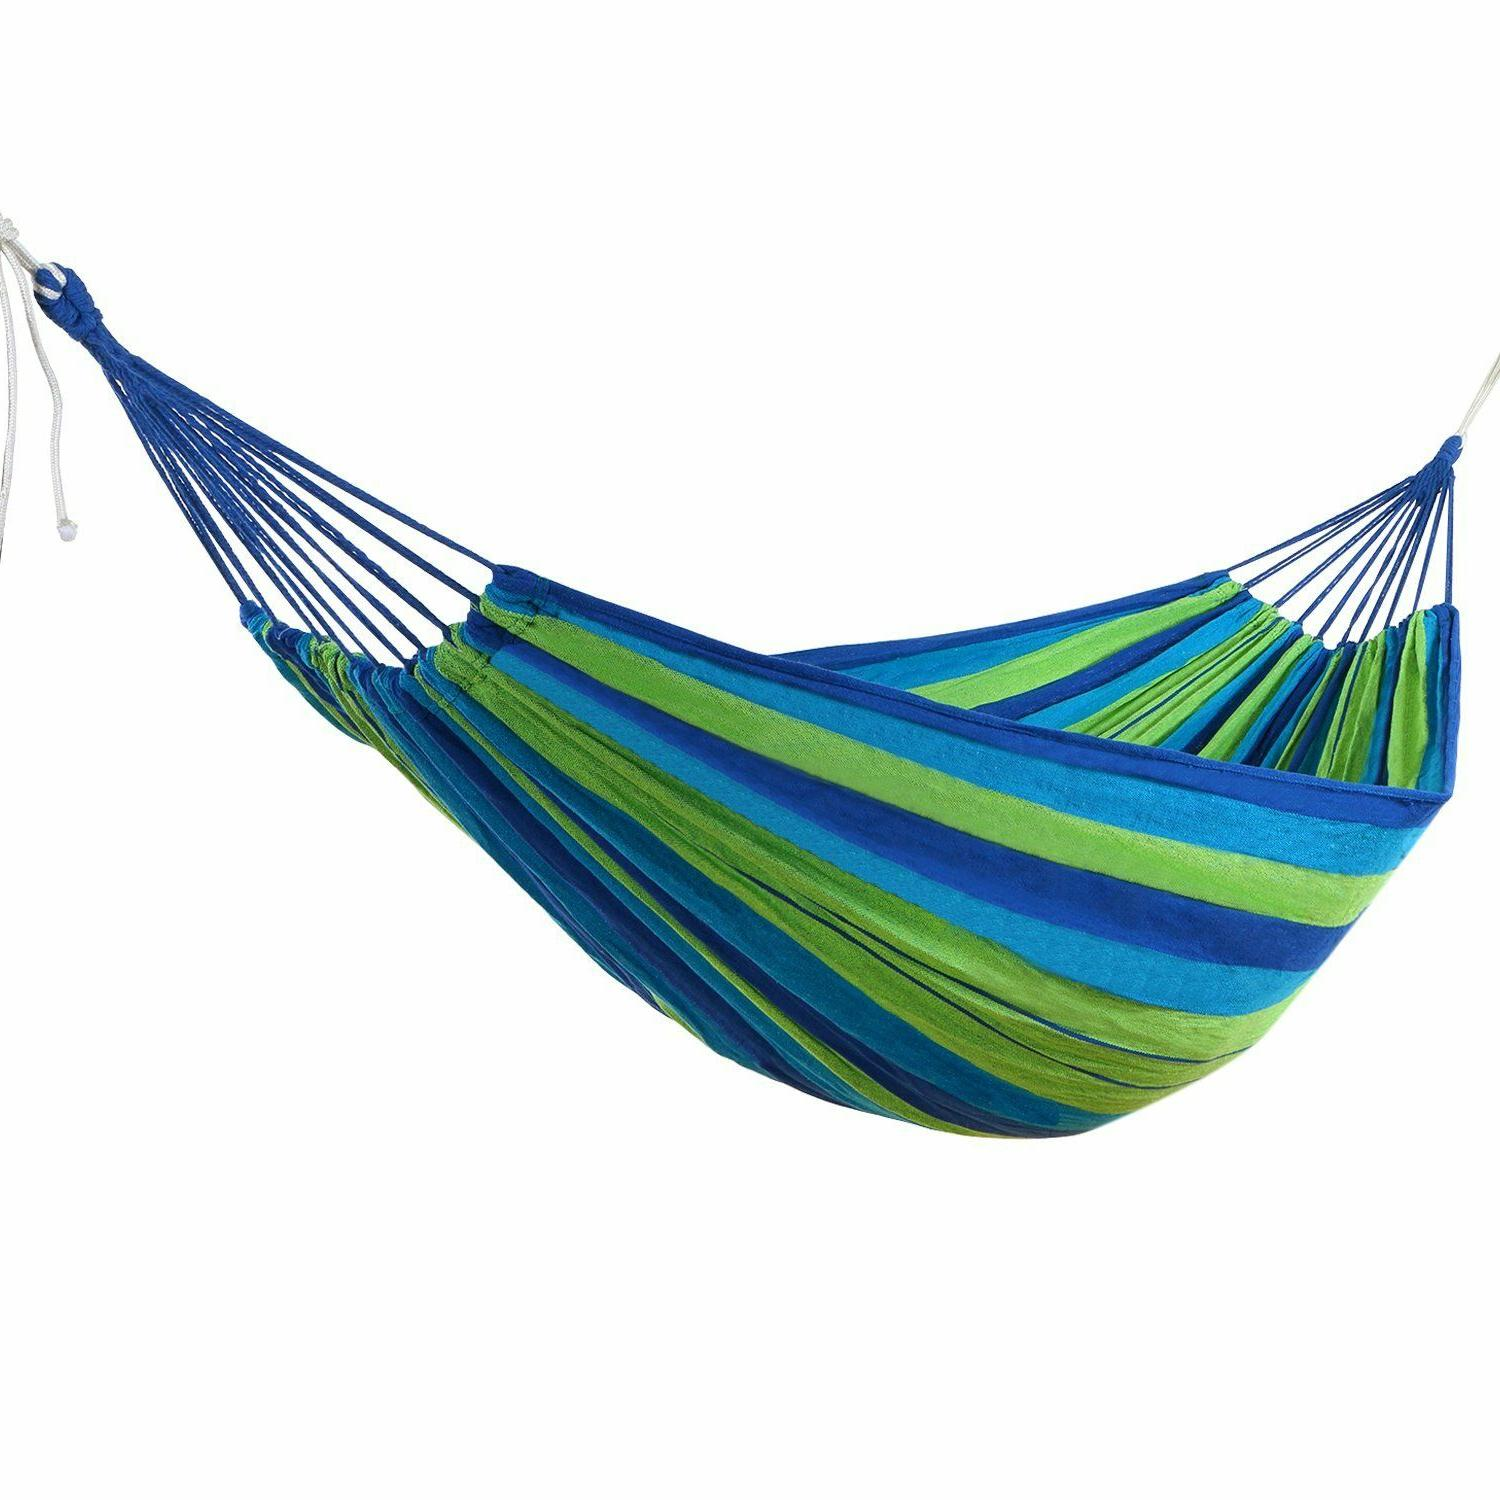 2 Person Hanging Camping Hammock weight